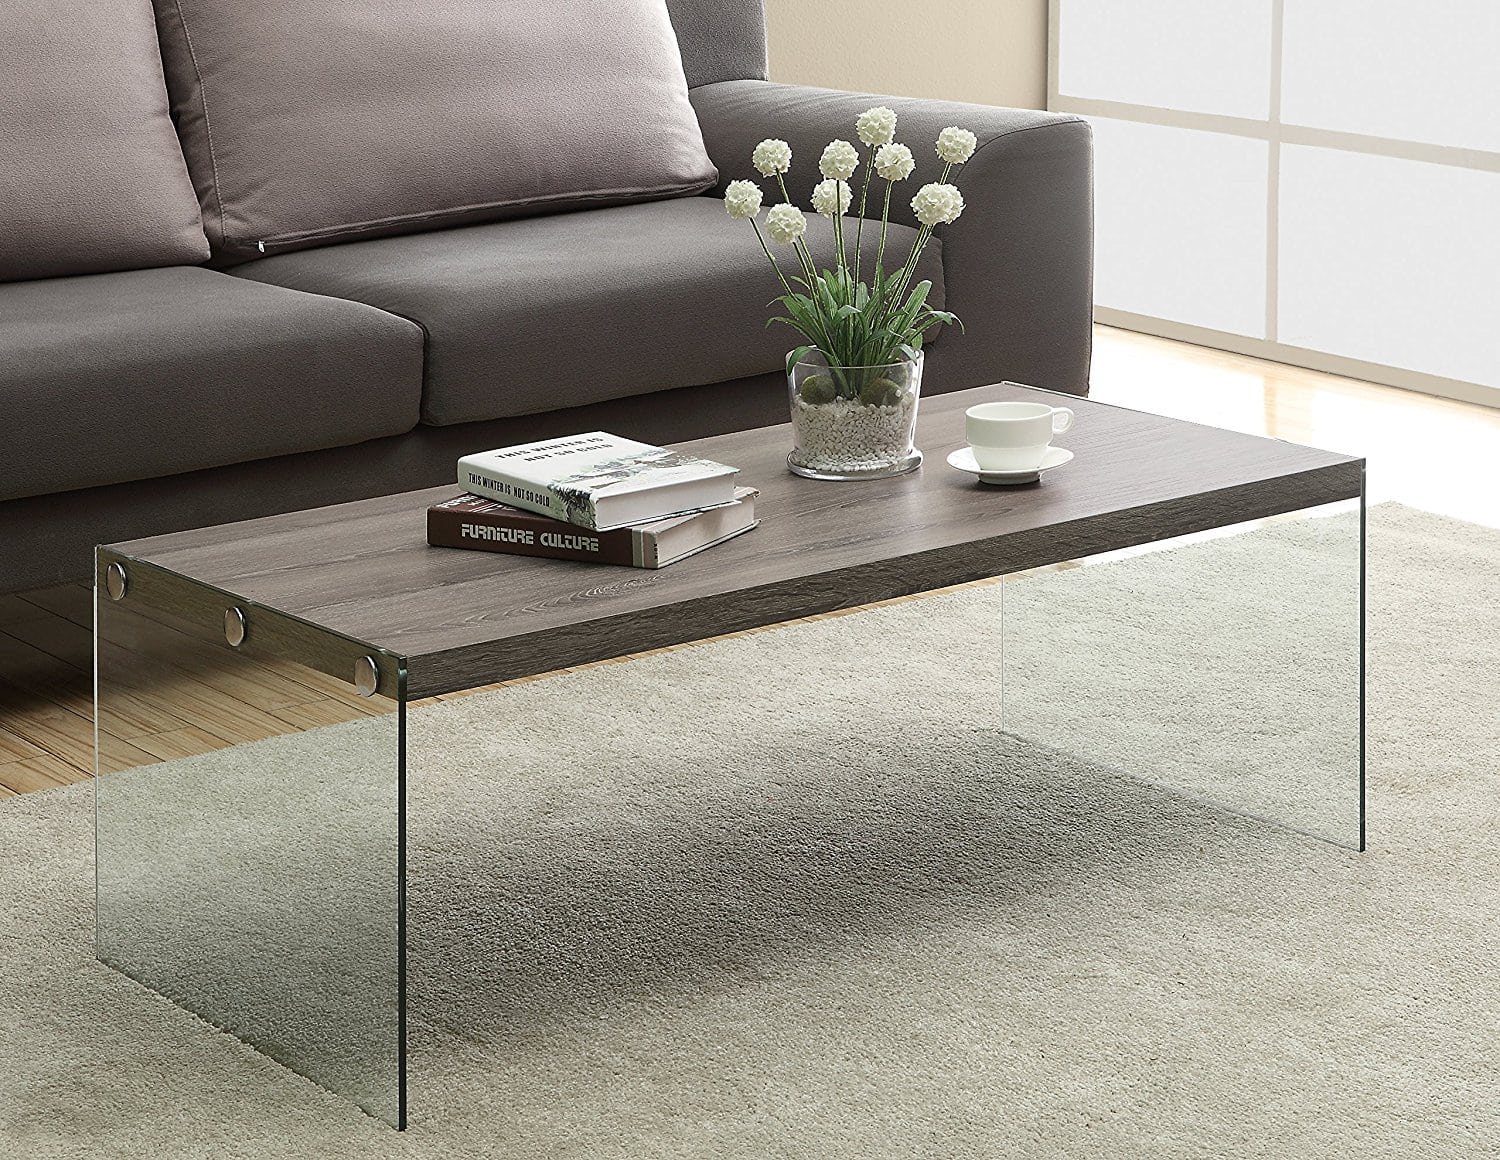 Cheap coffee tables under 100 that work for every style Glass coffee table decor